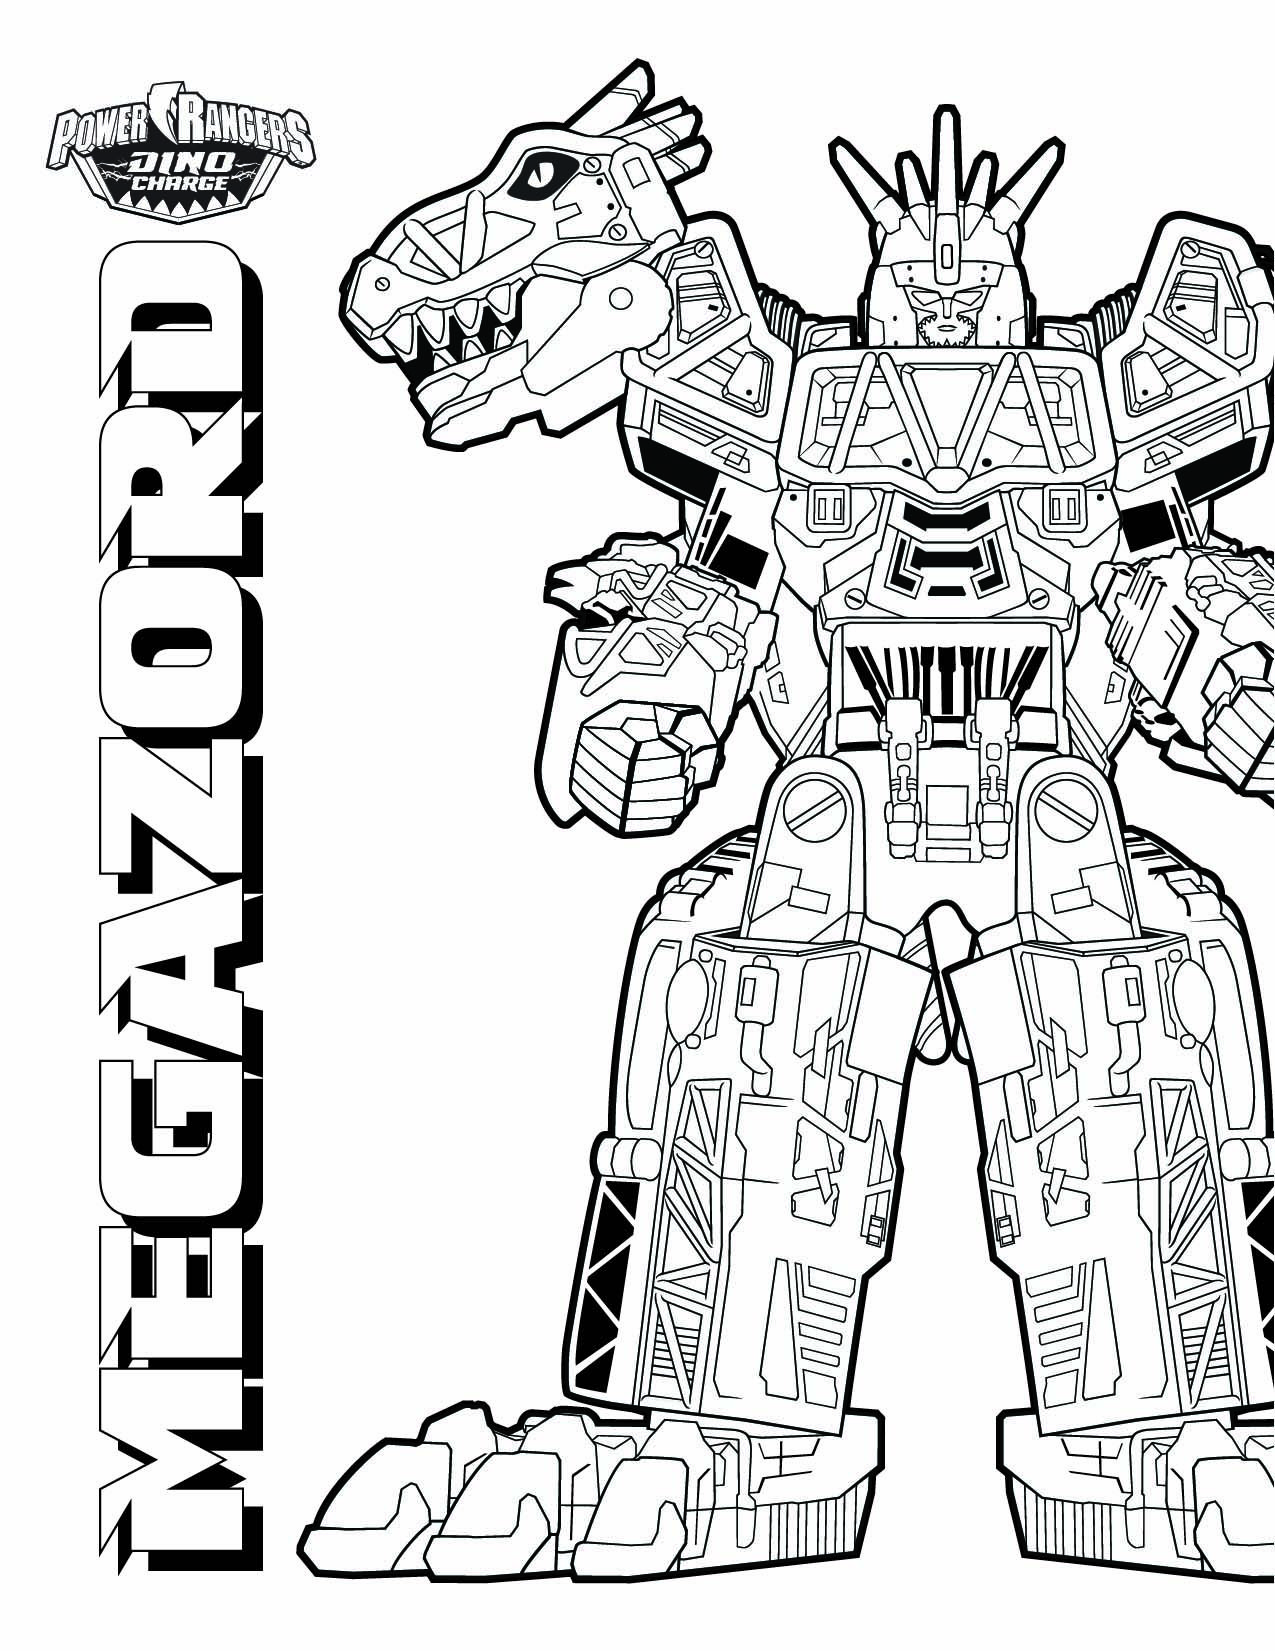 Megazord dinosaur coloring pages coloring pages for boys coloring sheets coloring books